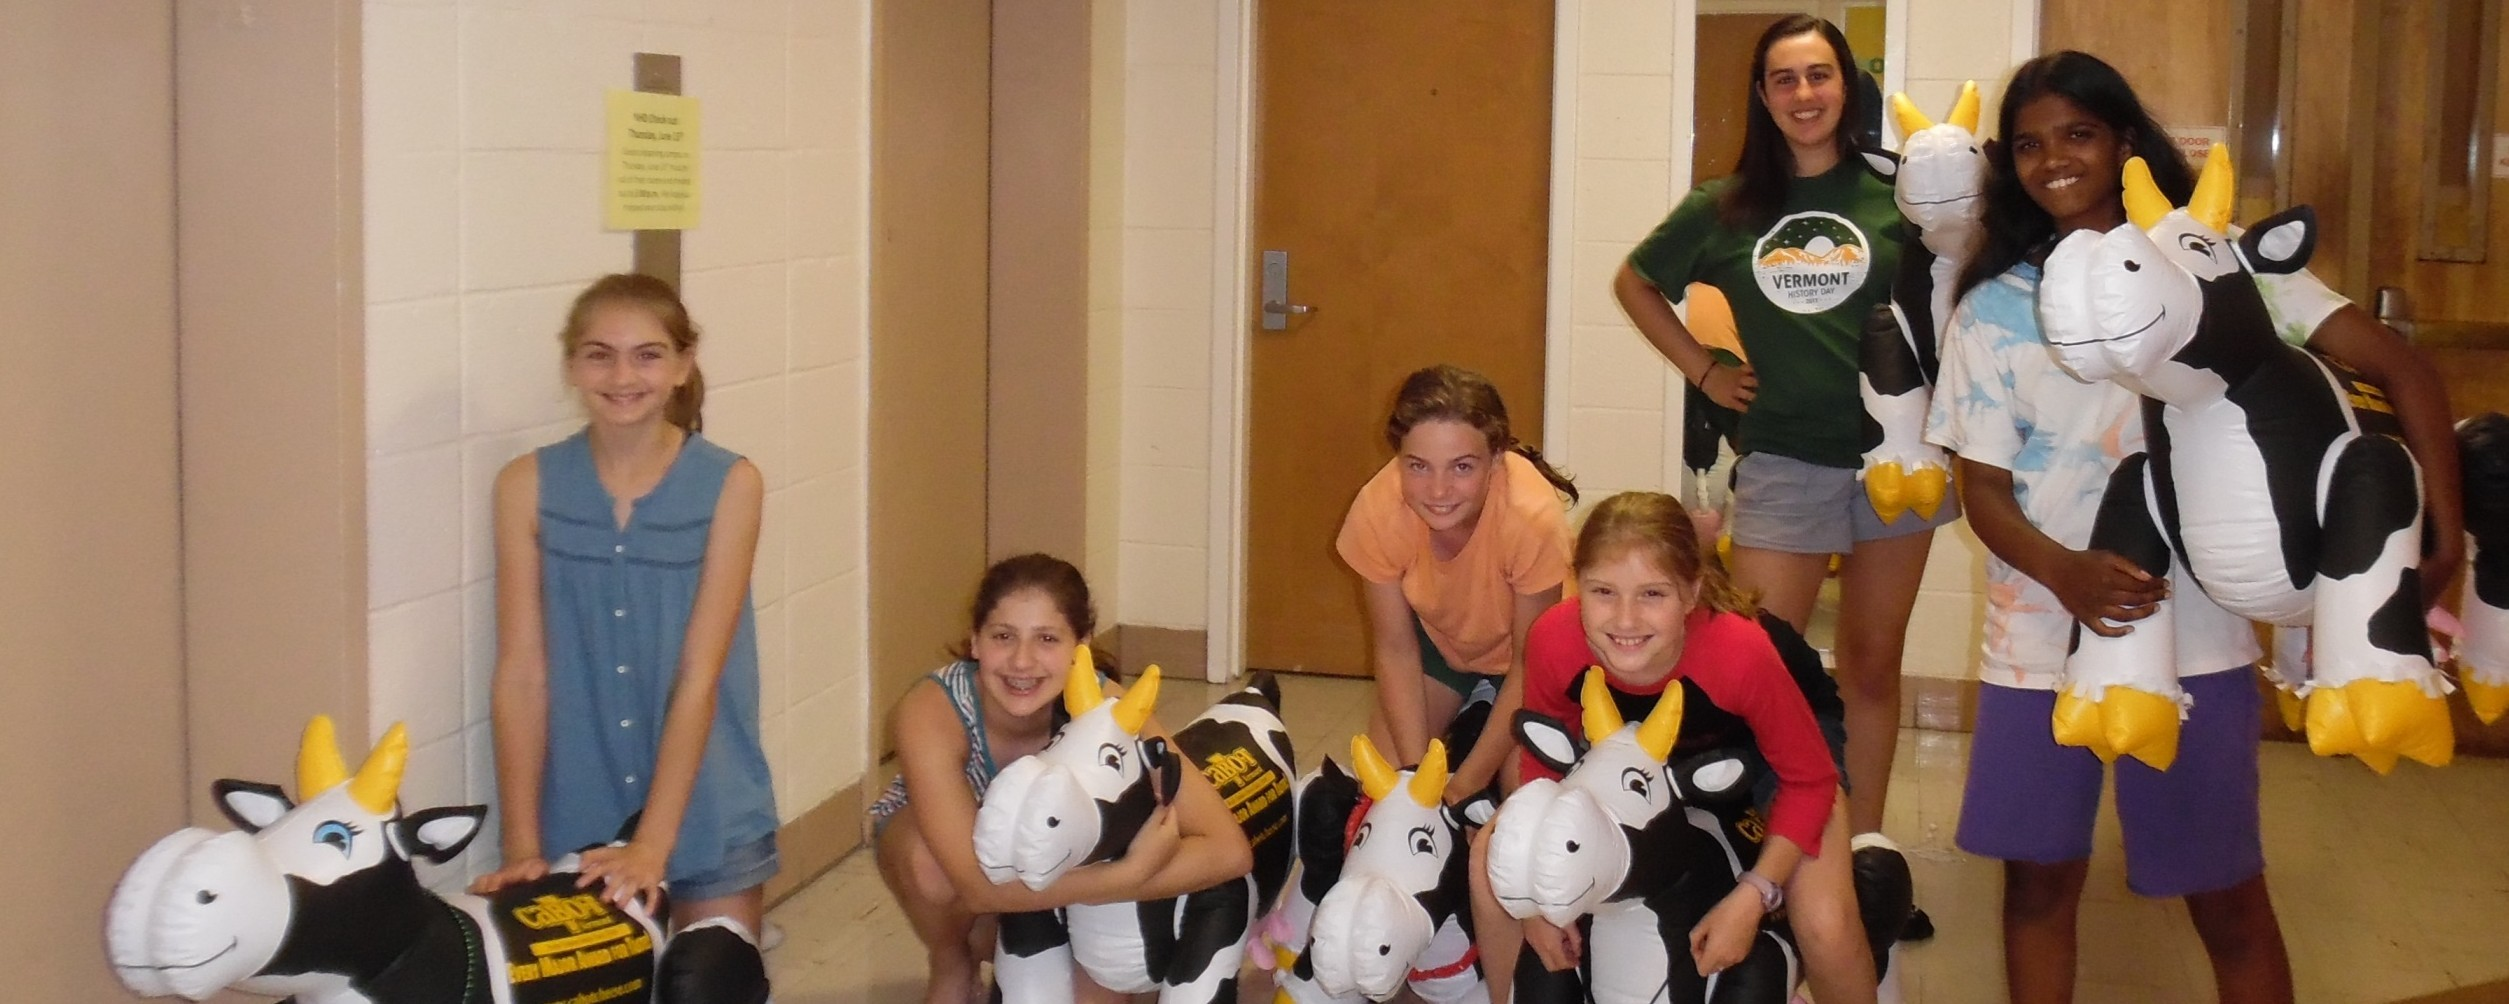 group of students in the dorm with inflatable cows at National History Day 2017